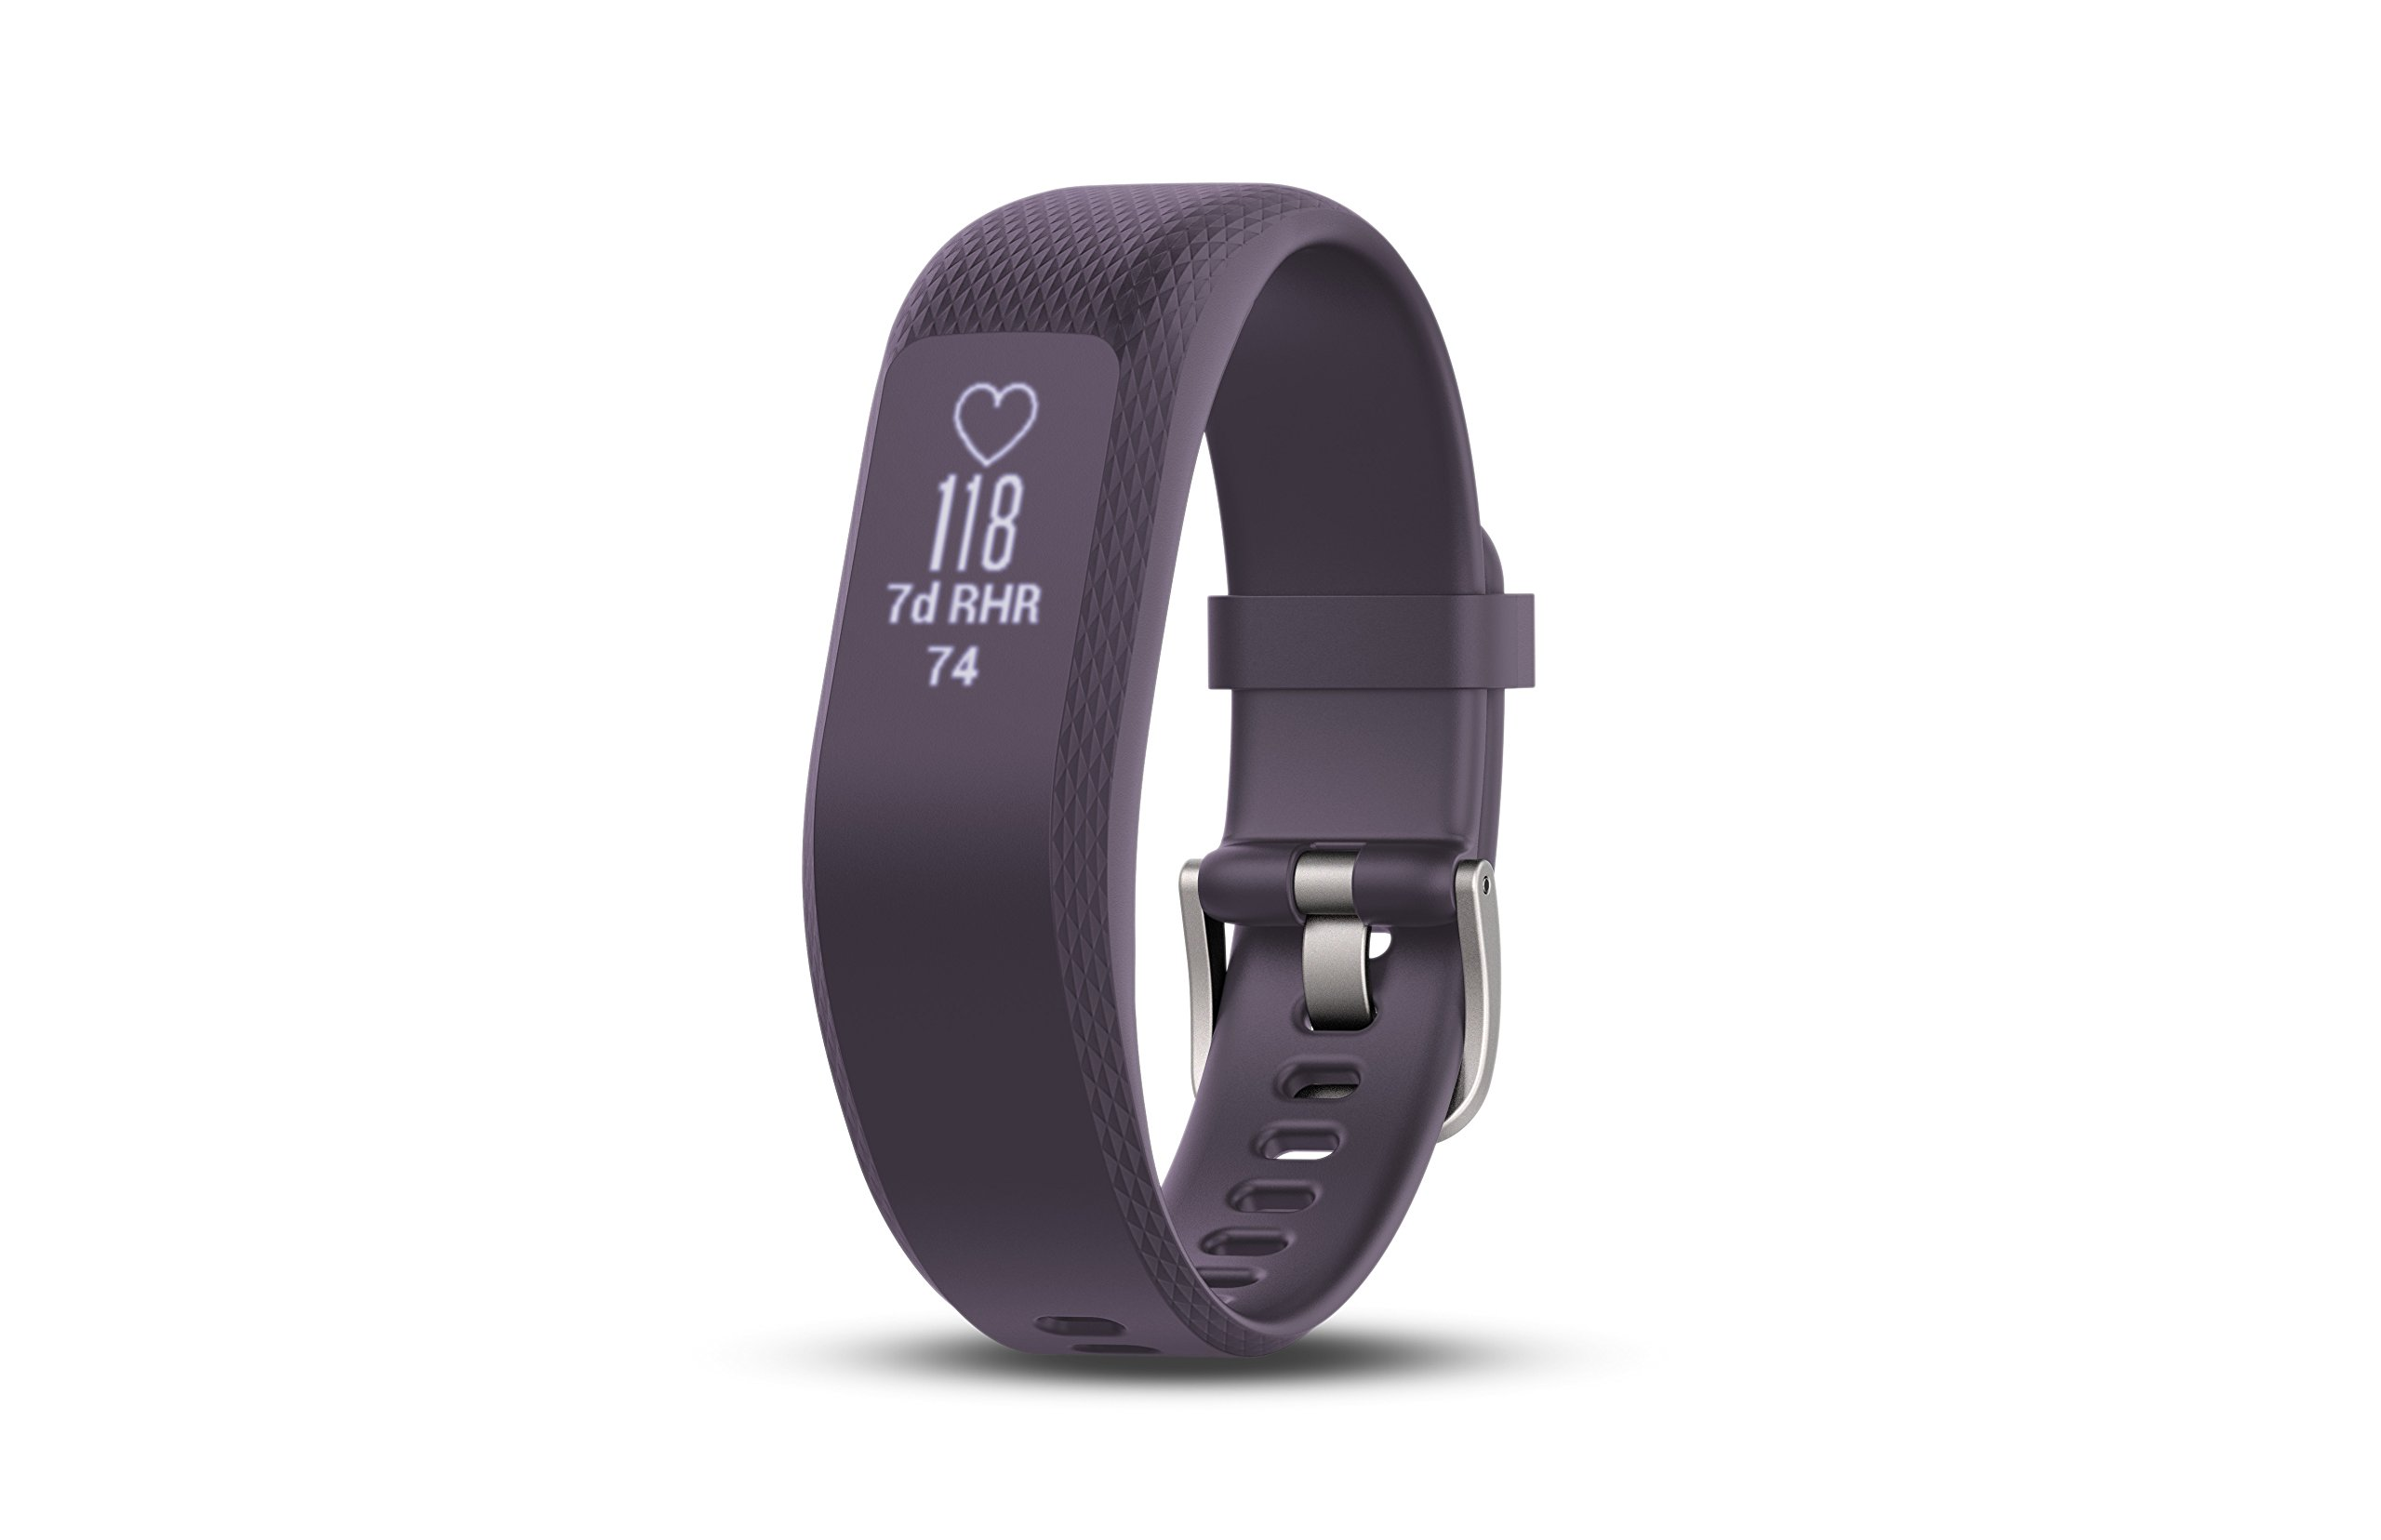 Best fitness trackers Garmin vívosmart 3, Fitness/Activity Tracker with Smart Notifications